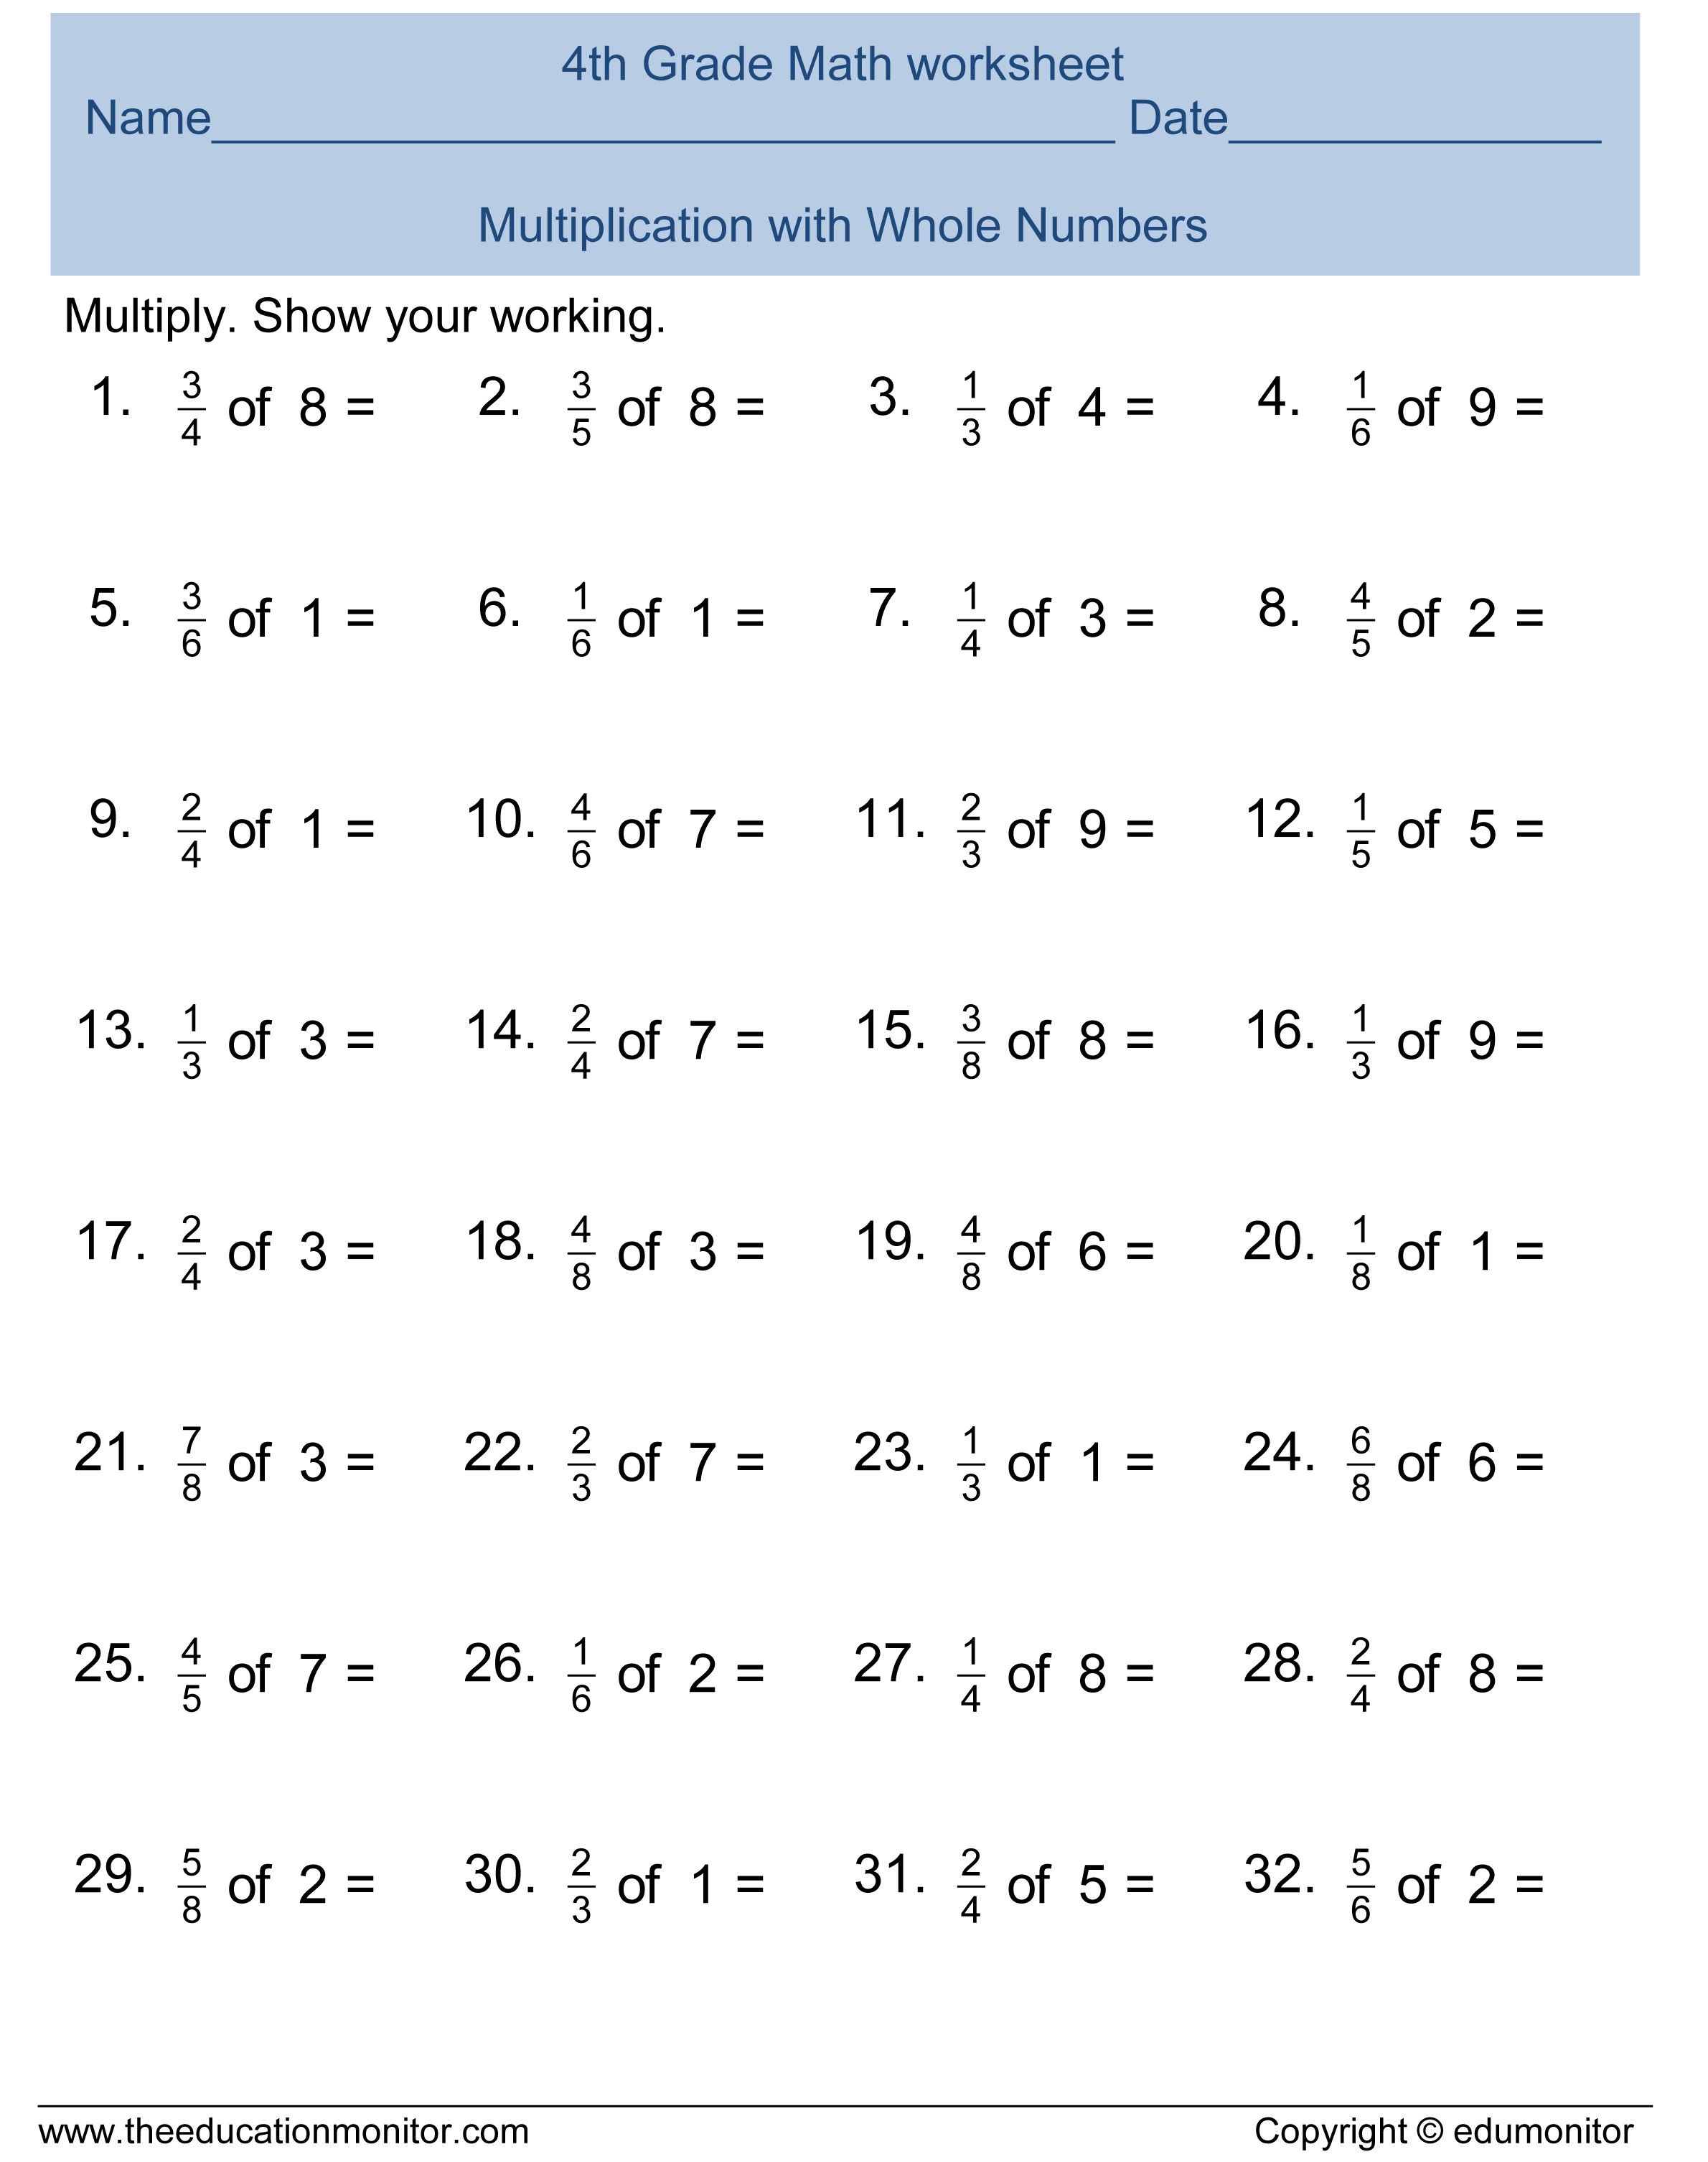 Printable 8Th Grade Math Worksheets Fourth Grade Math Worksheets | Free Printable Math Worksheets For 4Th Grade